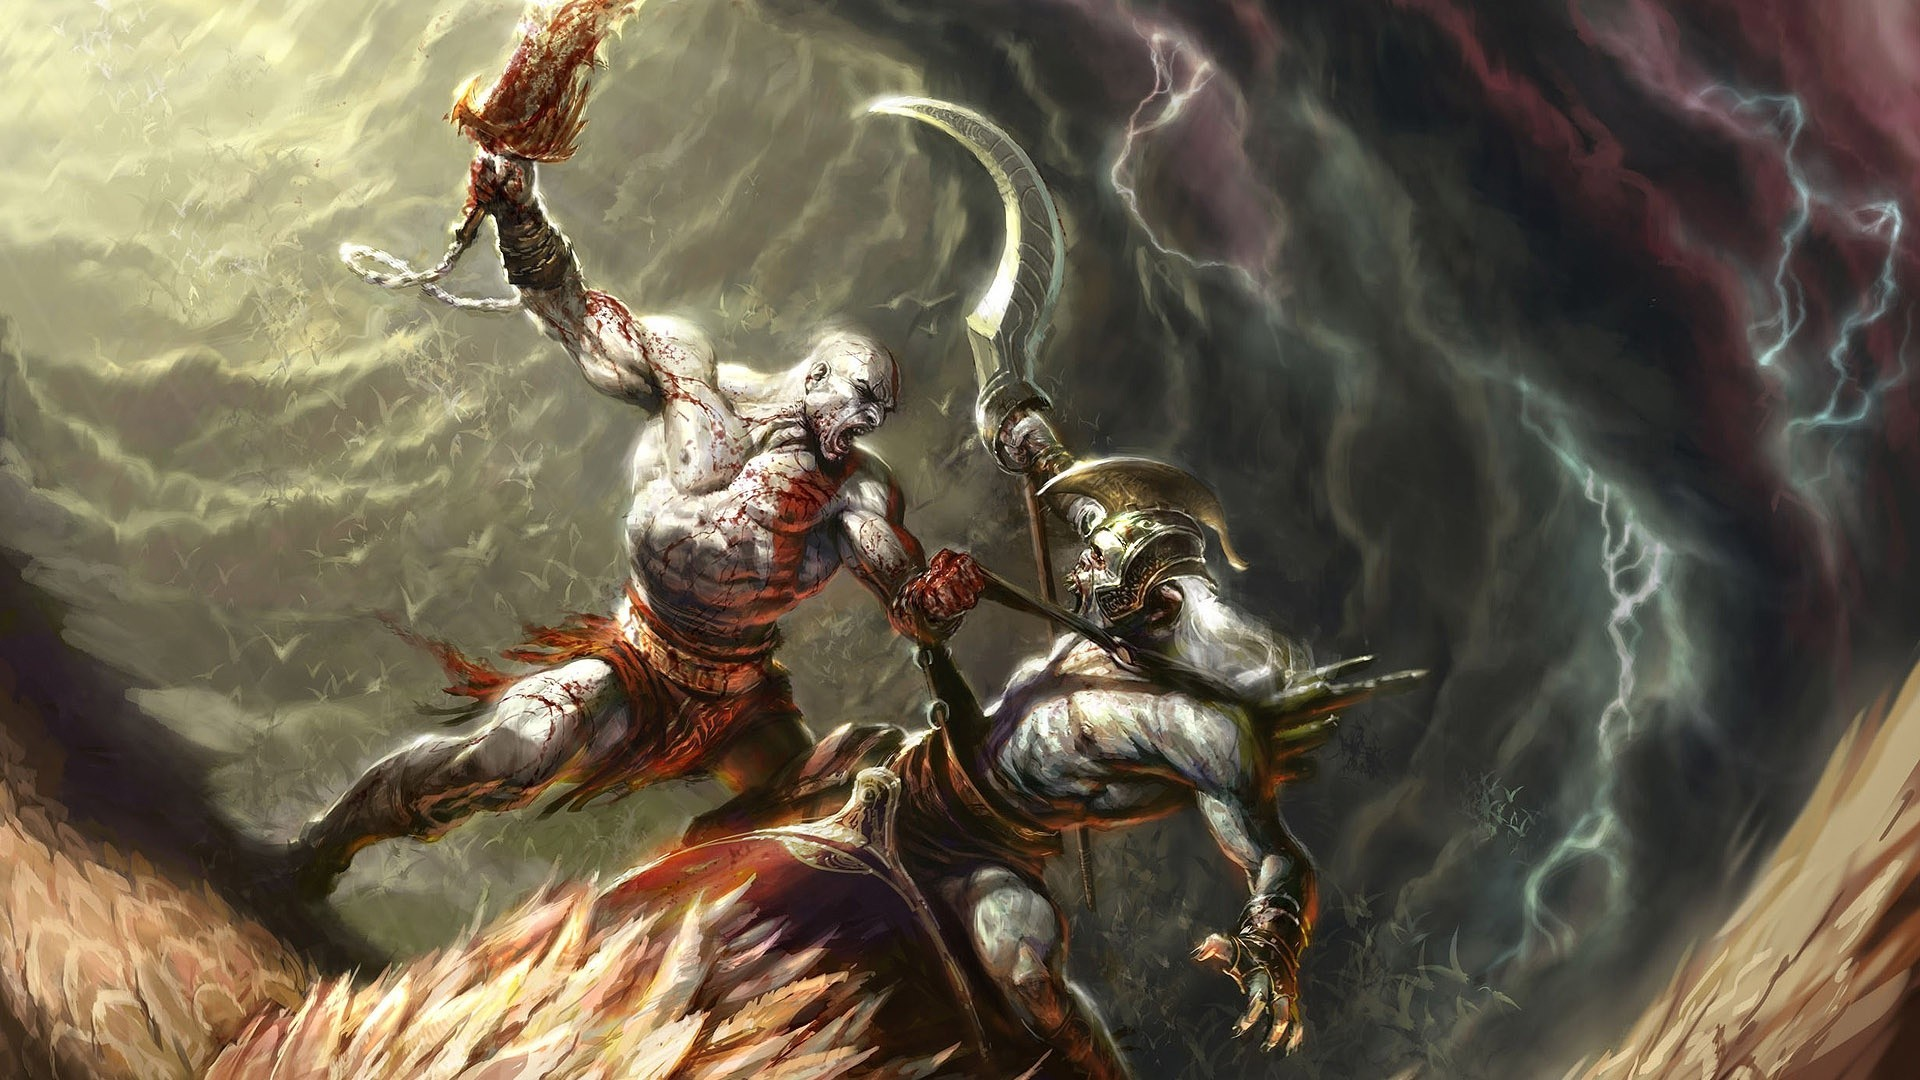 Free Download Kratos God Of War Wallpaper 9339 1920x1080 For